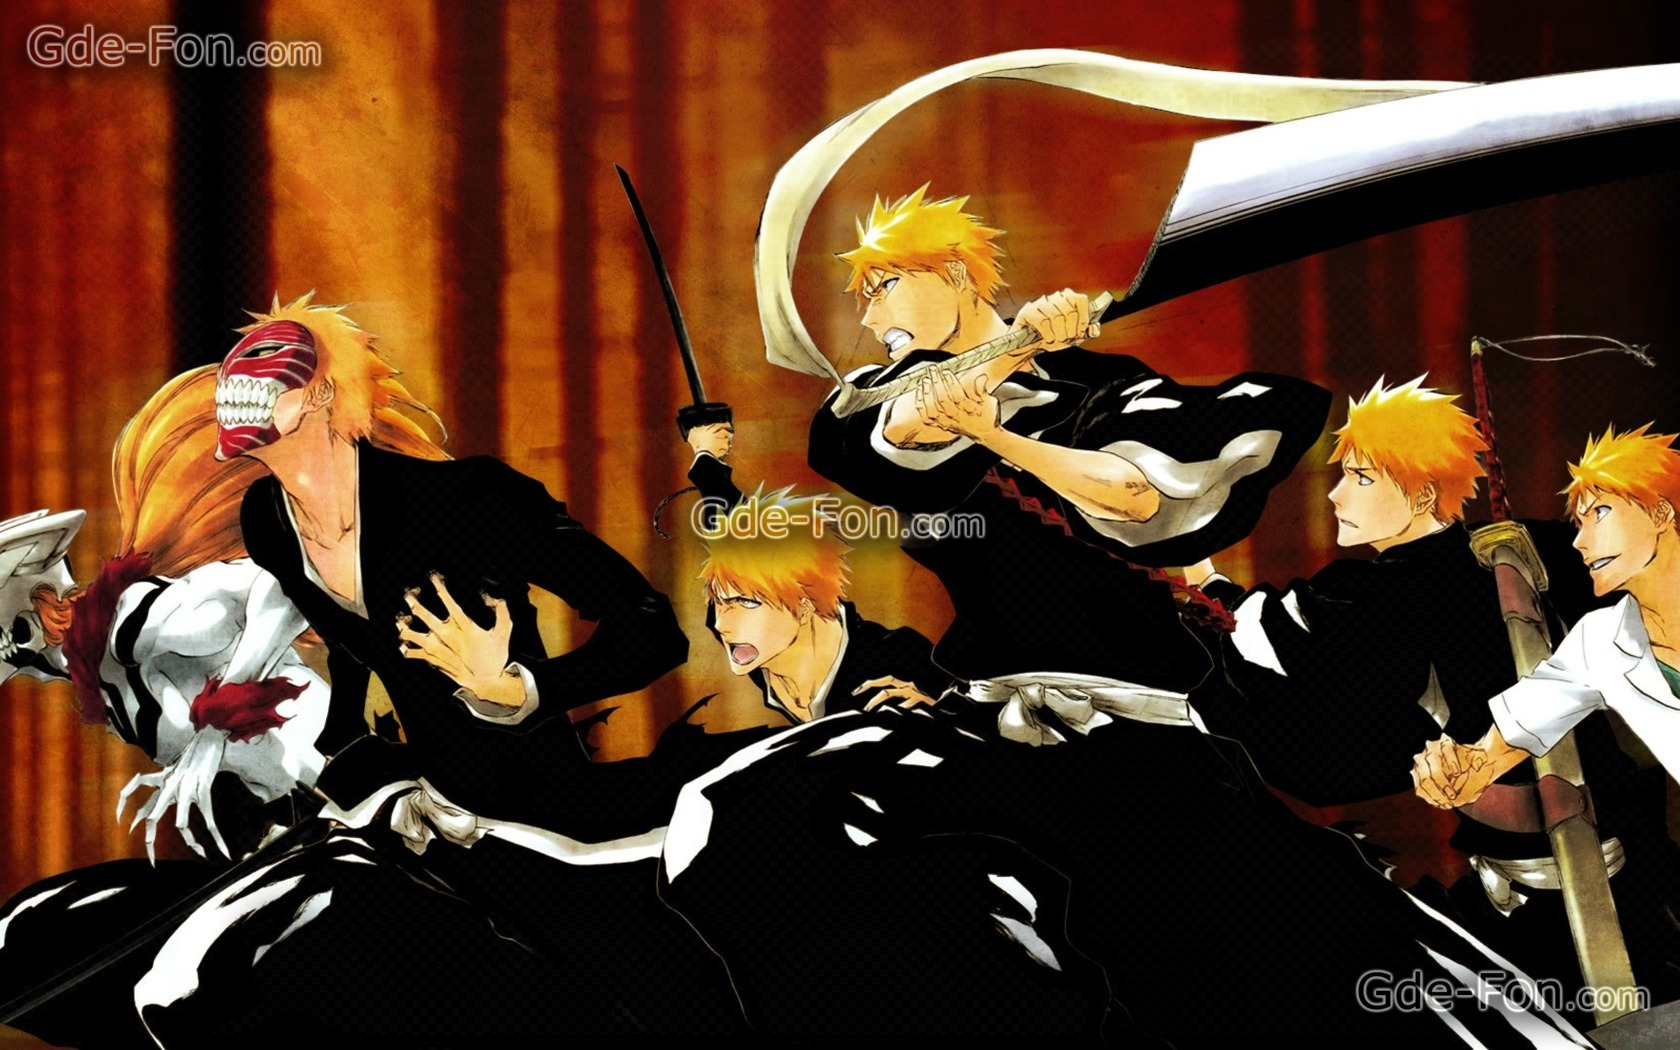 Cool Guy Anime Wallpaper 2 Wide Wallpaper   Animewpcom 1680x1050